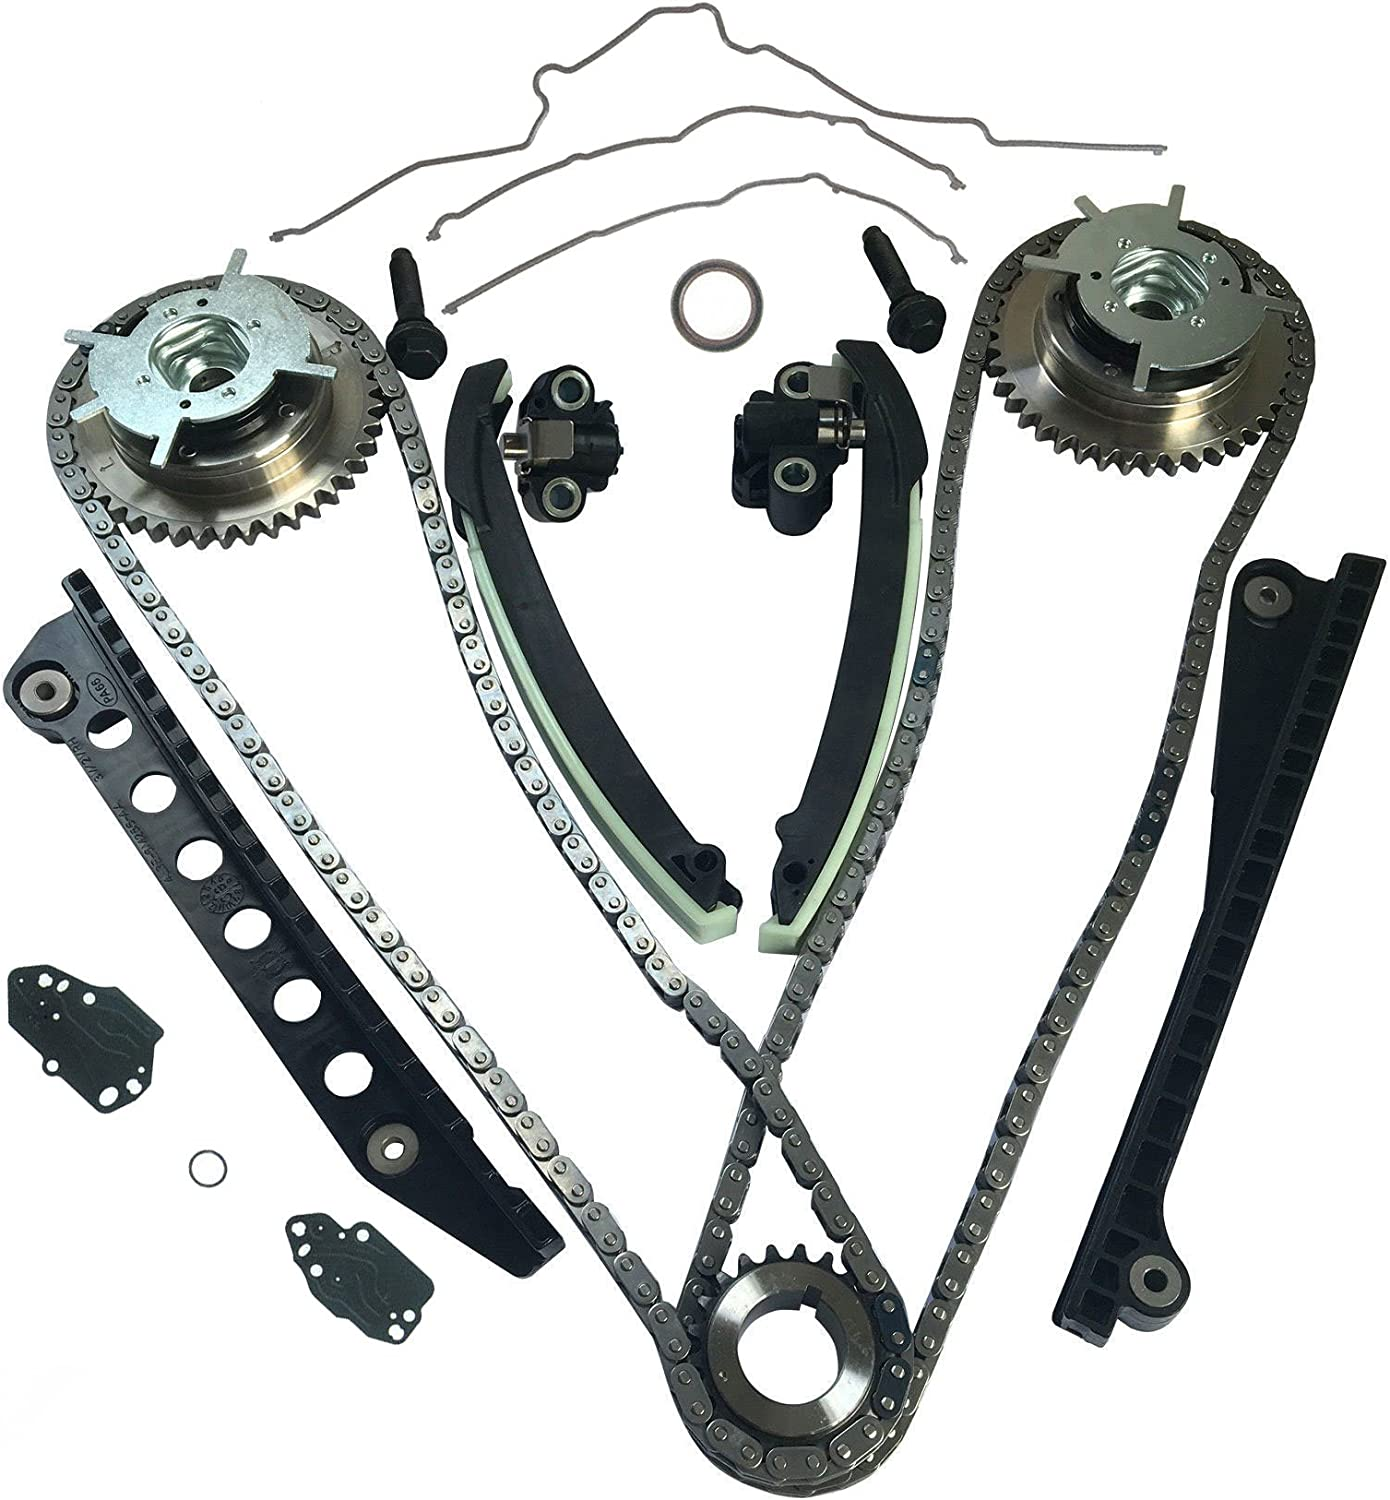 Timing Chain Kit with Tensioner Guides Cover Gaskets Cam Phaser Engine Variable Camshaft Timing Cam Phaser VCT VVTi Actuator Timing Sprocket Bolt Gaskets For Ford TRITON 3-Valve F150 F250 Expedition